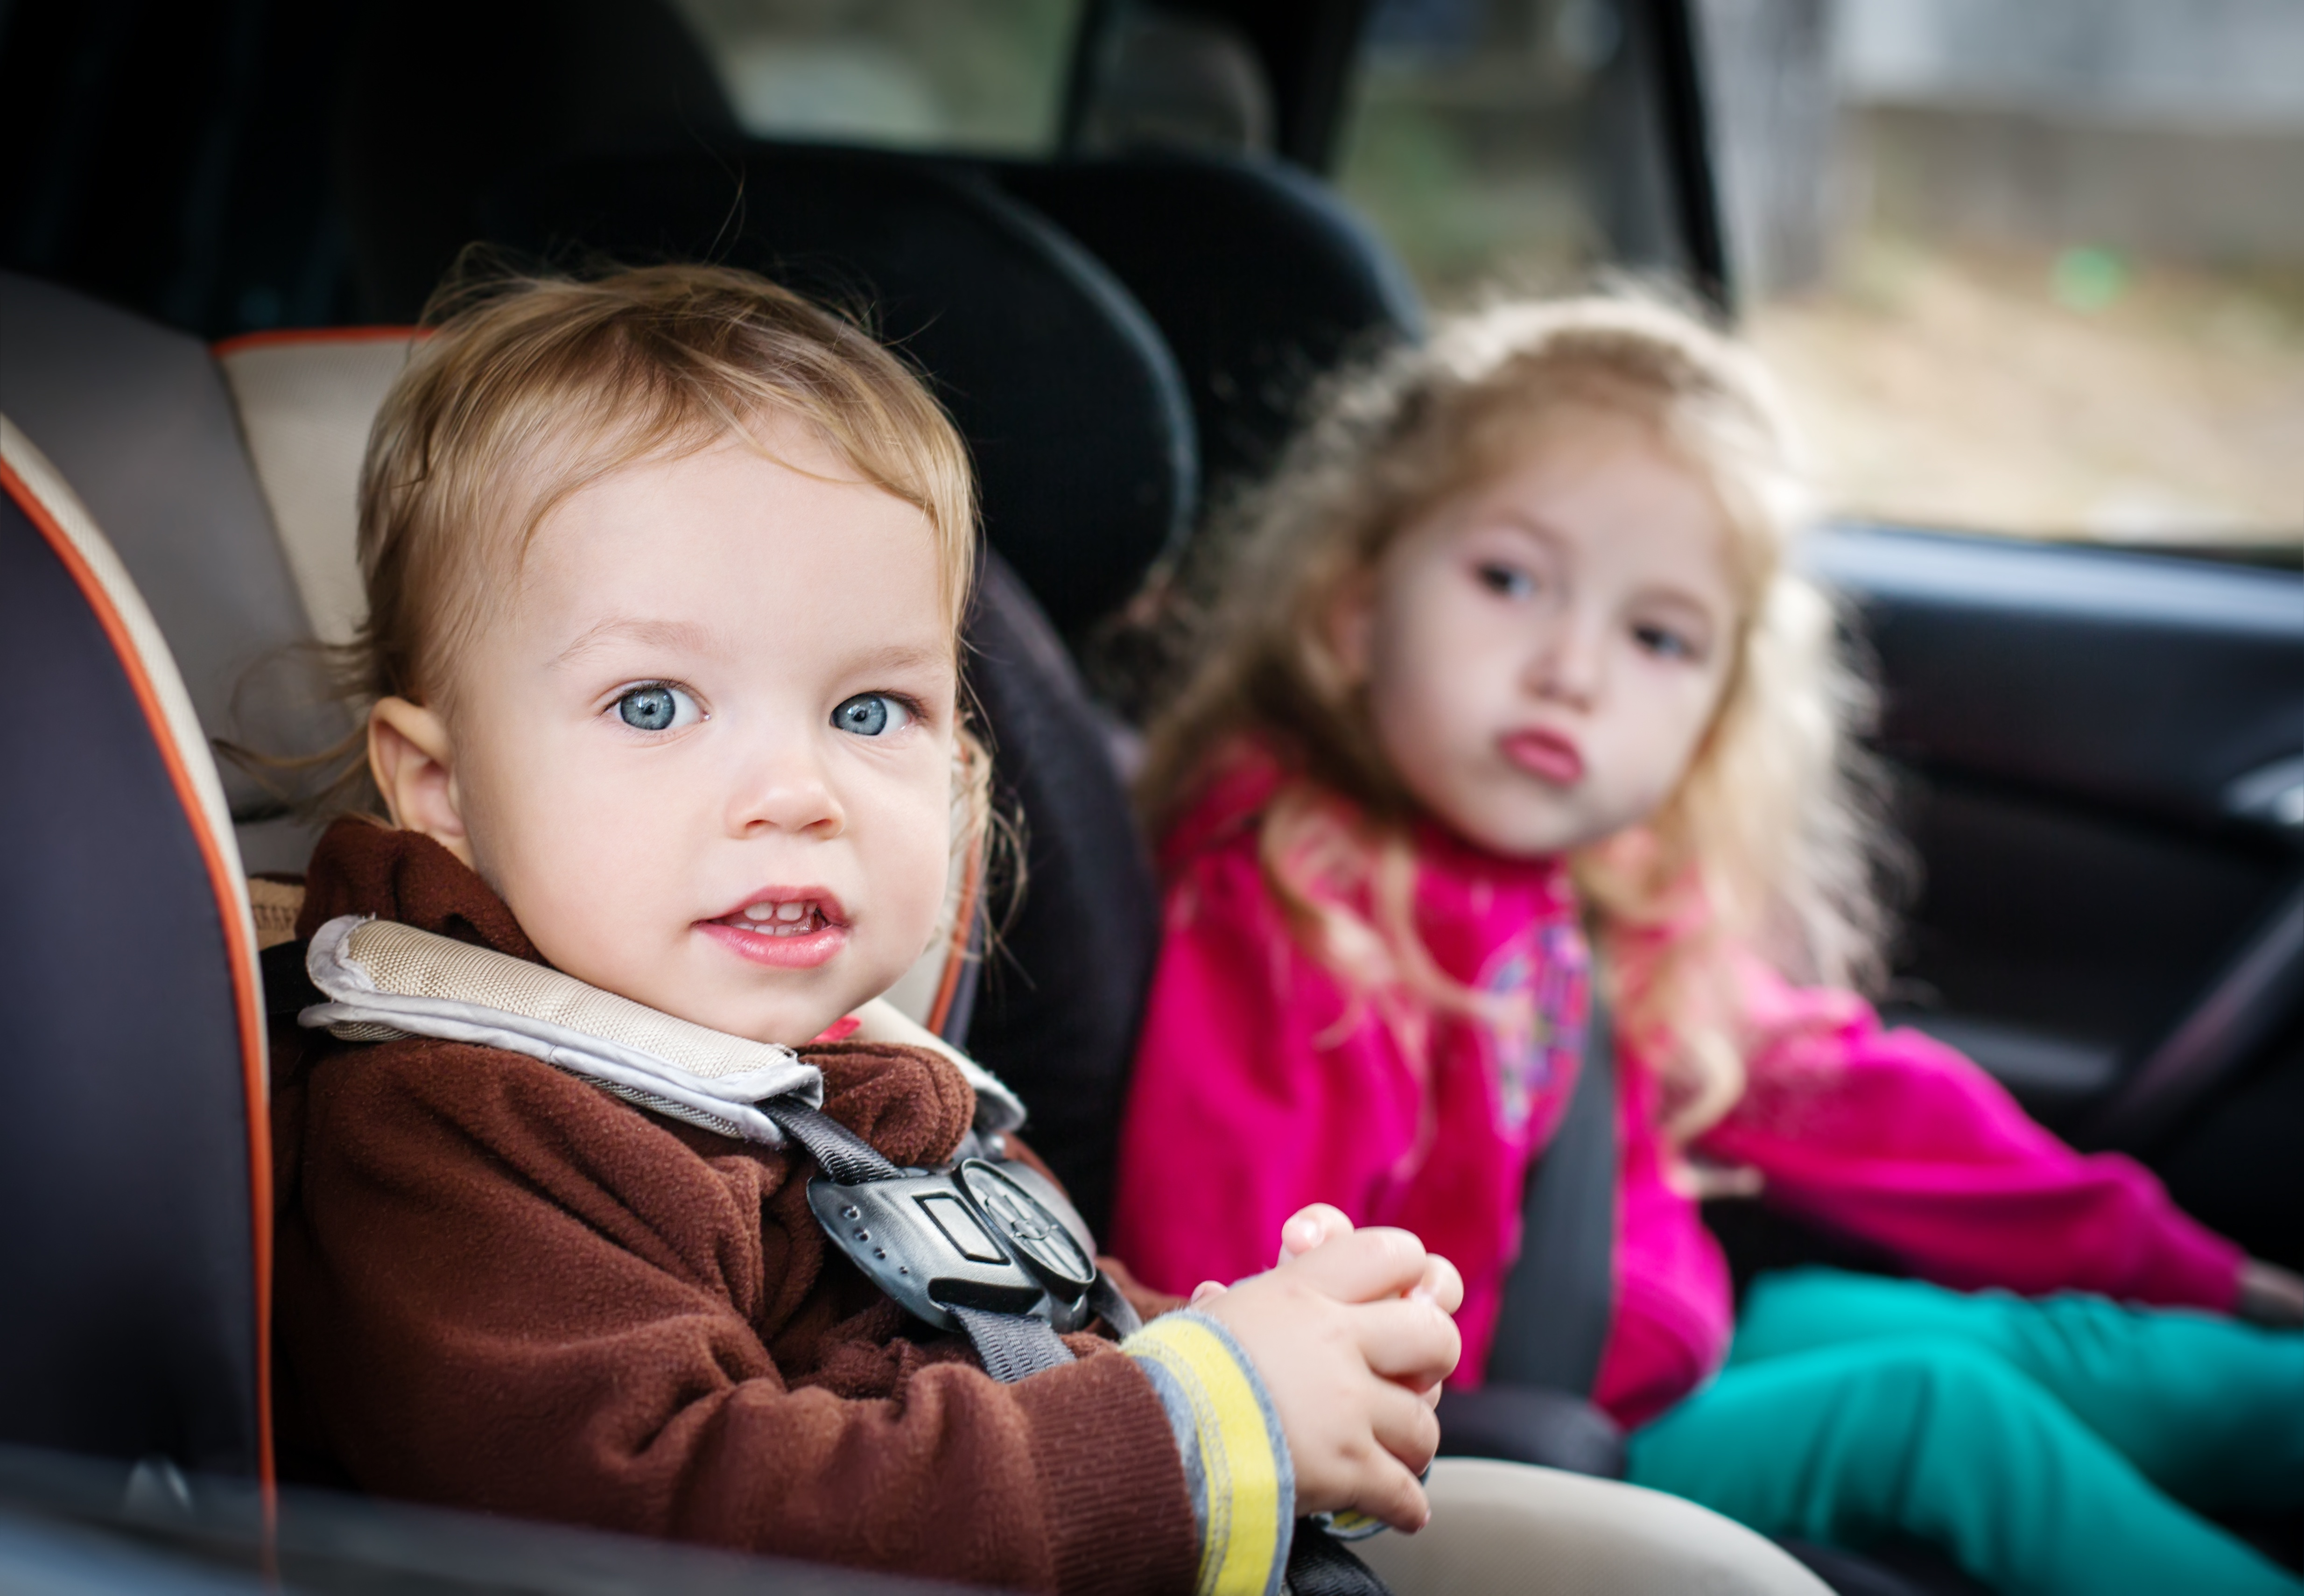 Why Child Seats are so Important